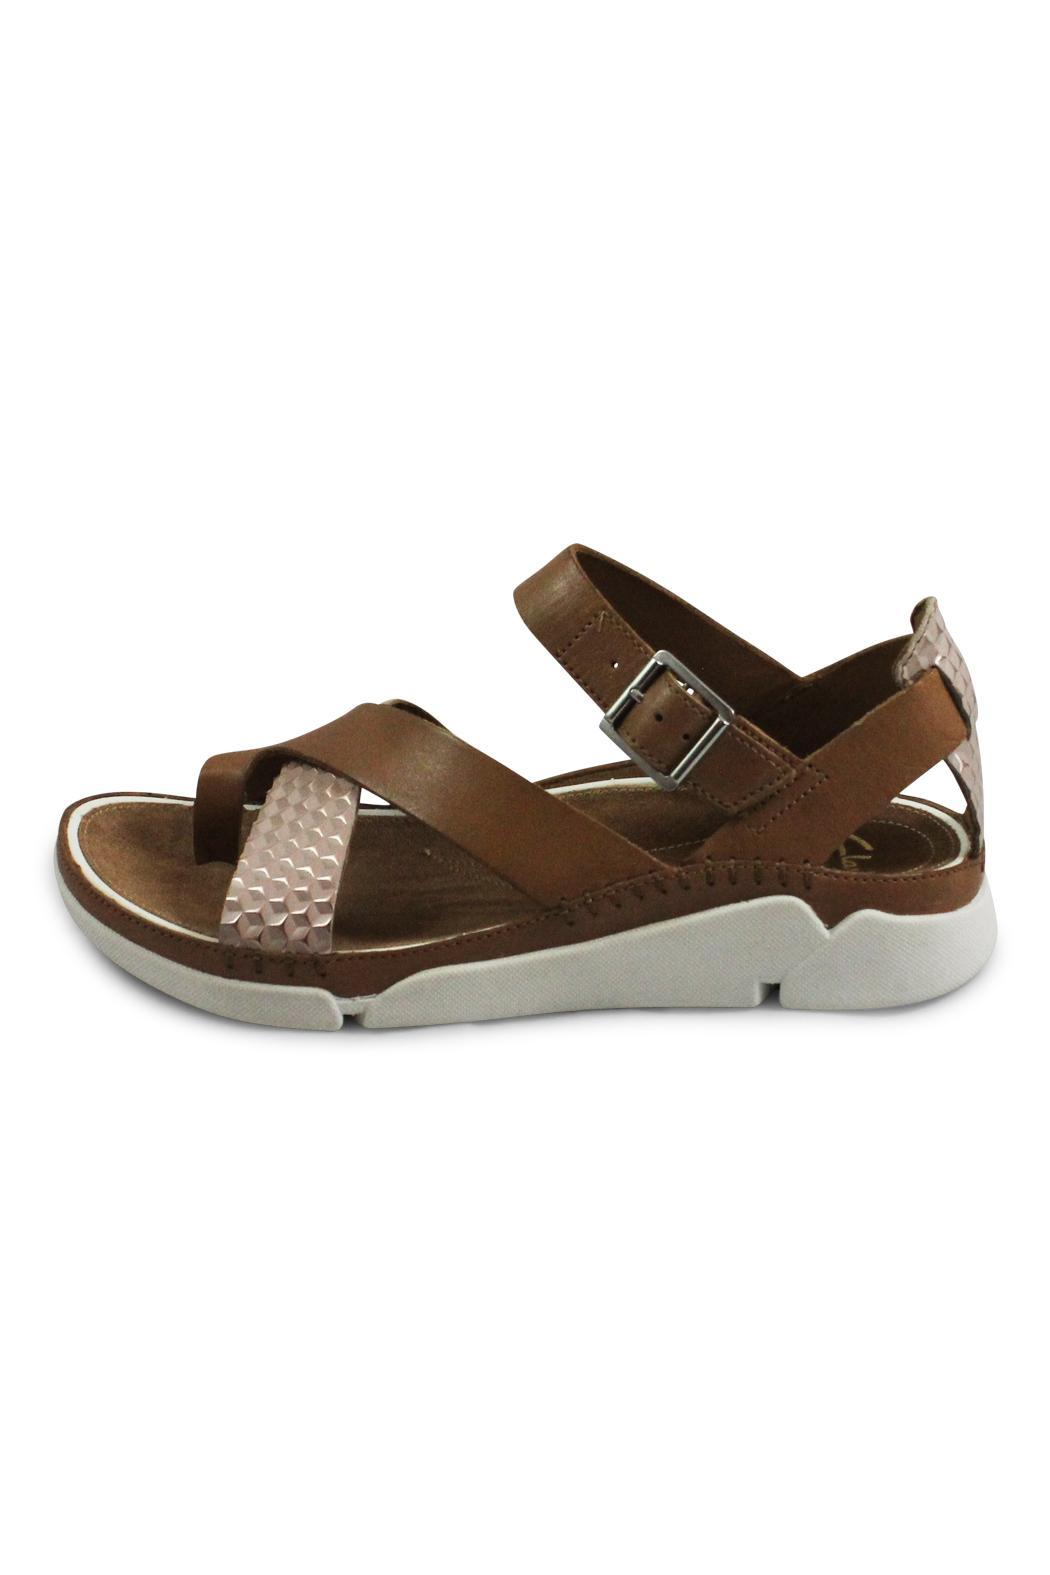 Clarks Tan Flat Sandal - Front Cropped Image